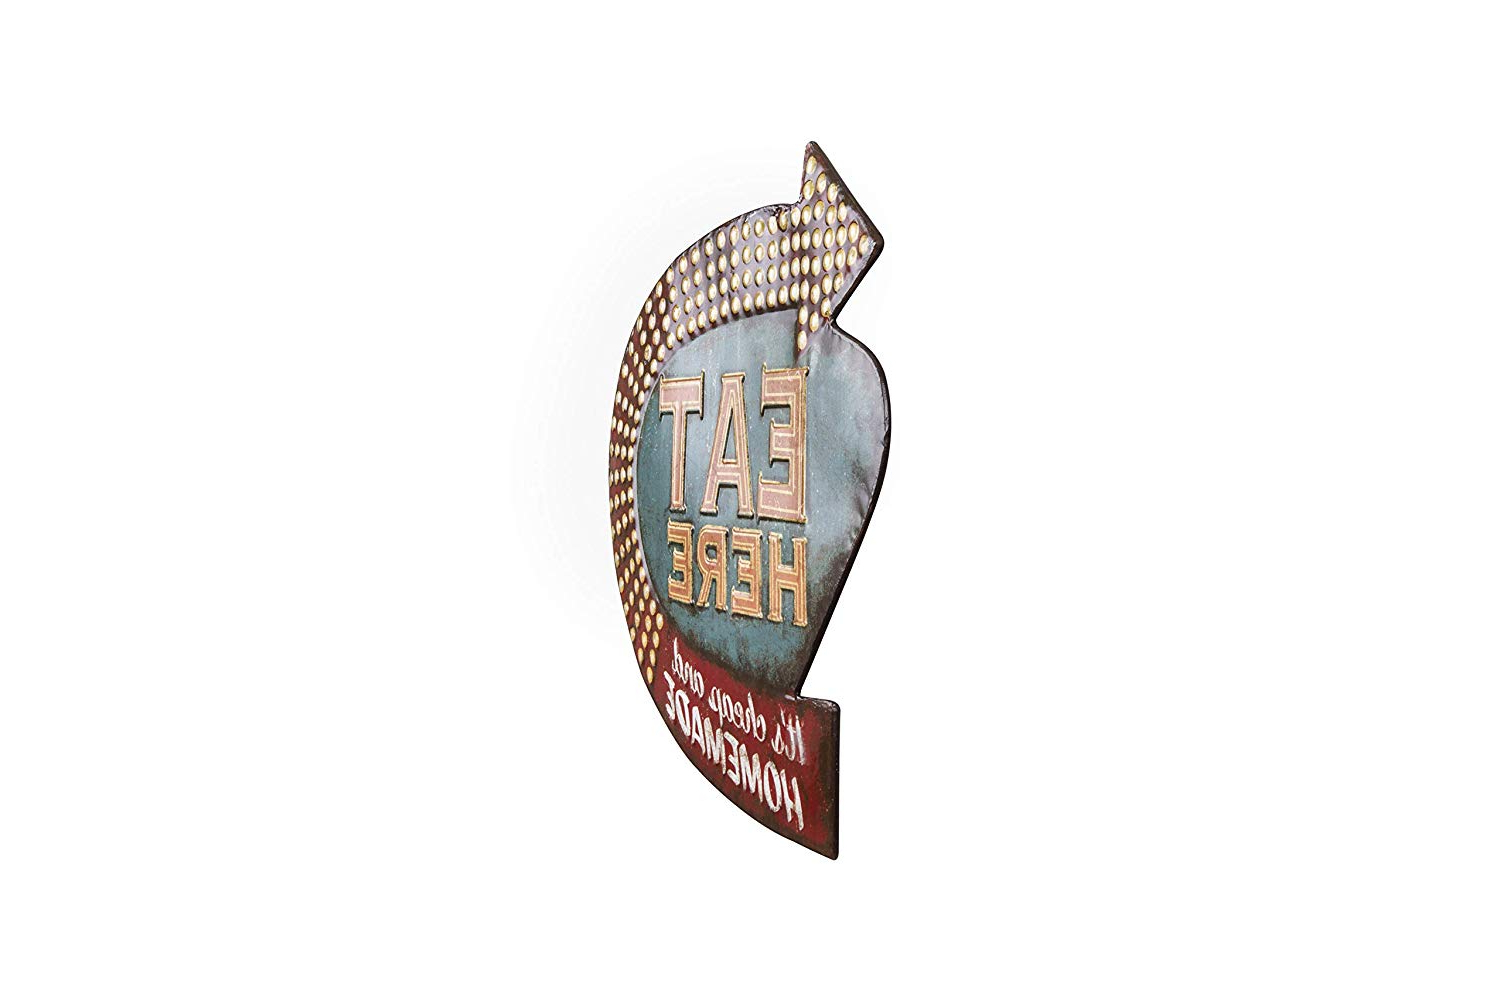 Amazon: Creative Co Op Eat Here Tin Retro Wall Decor: Home & Kitchen Within Fashionable Casual Country Eat Here Retro Wall Decor (Gallery 10 of 20)